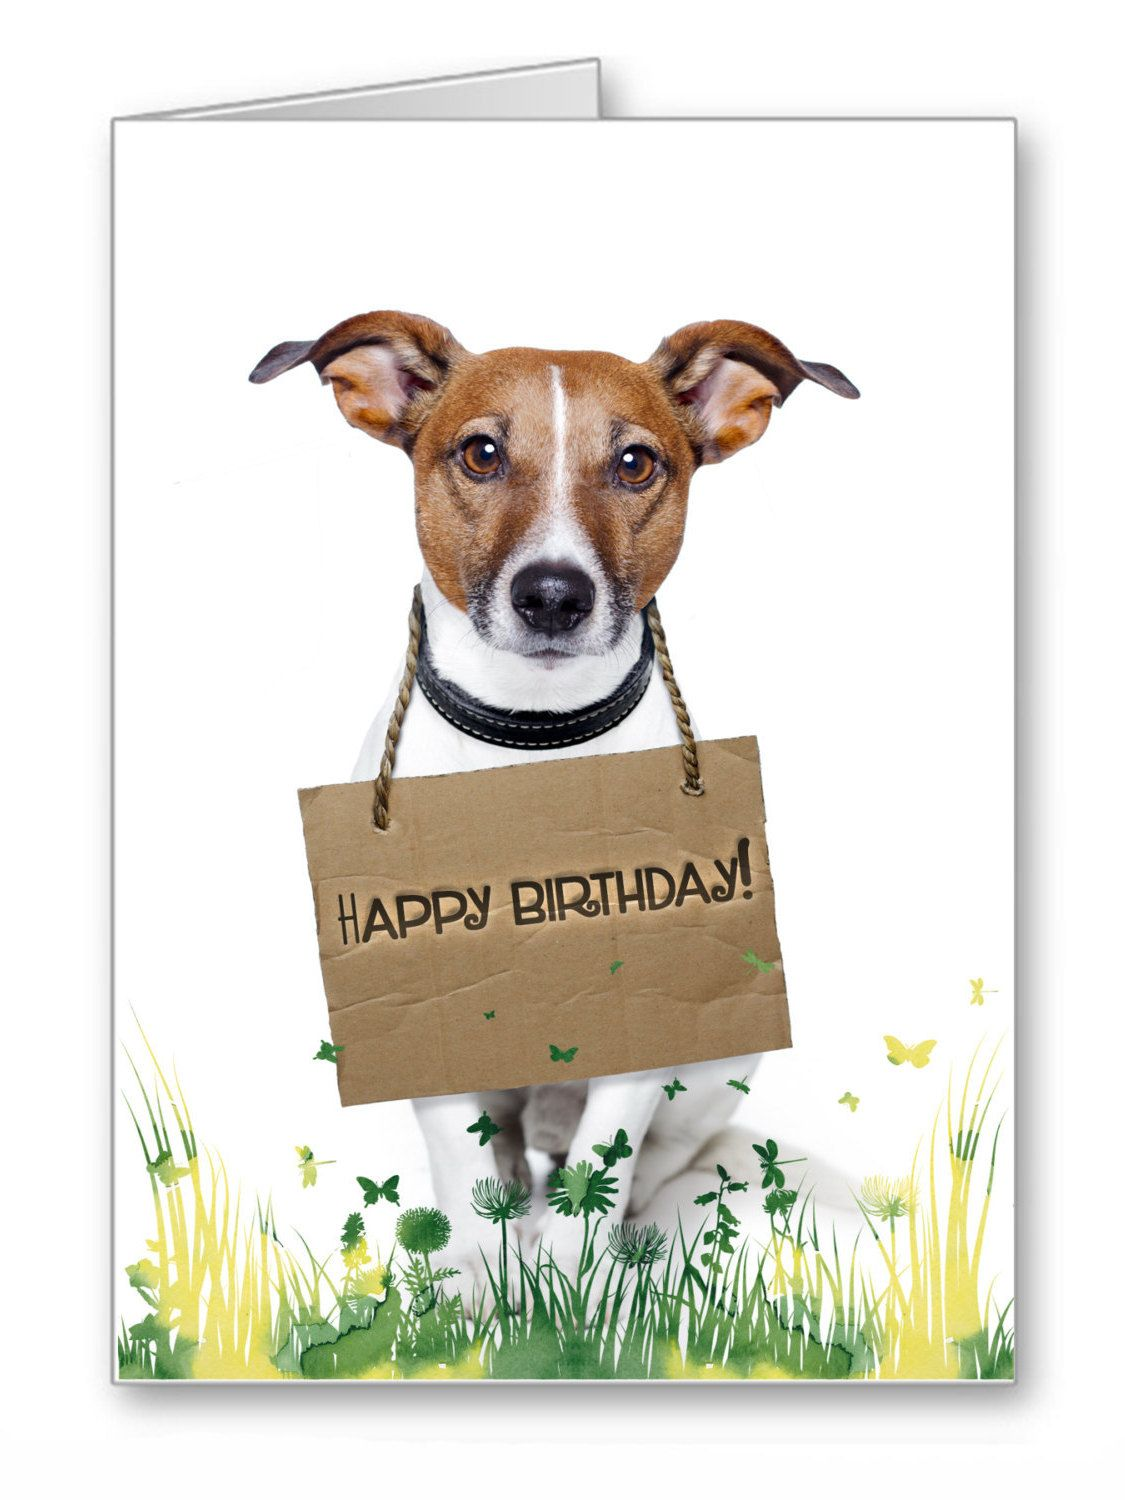 Happy Birthday Cards With Dogs